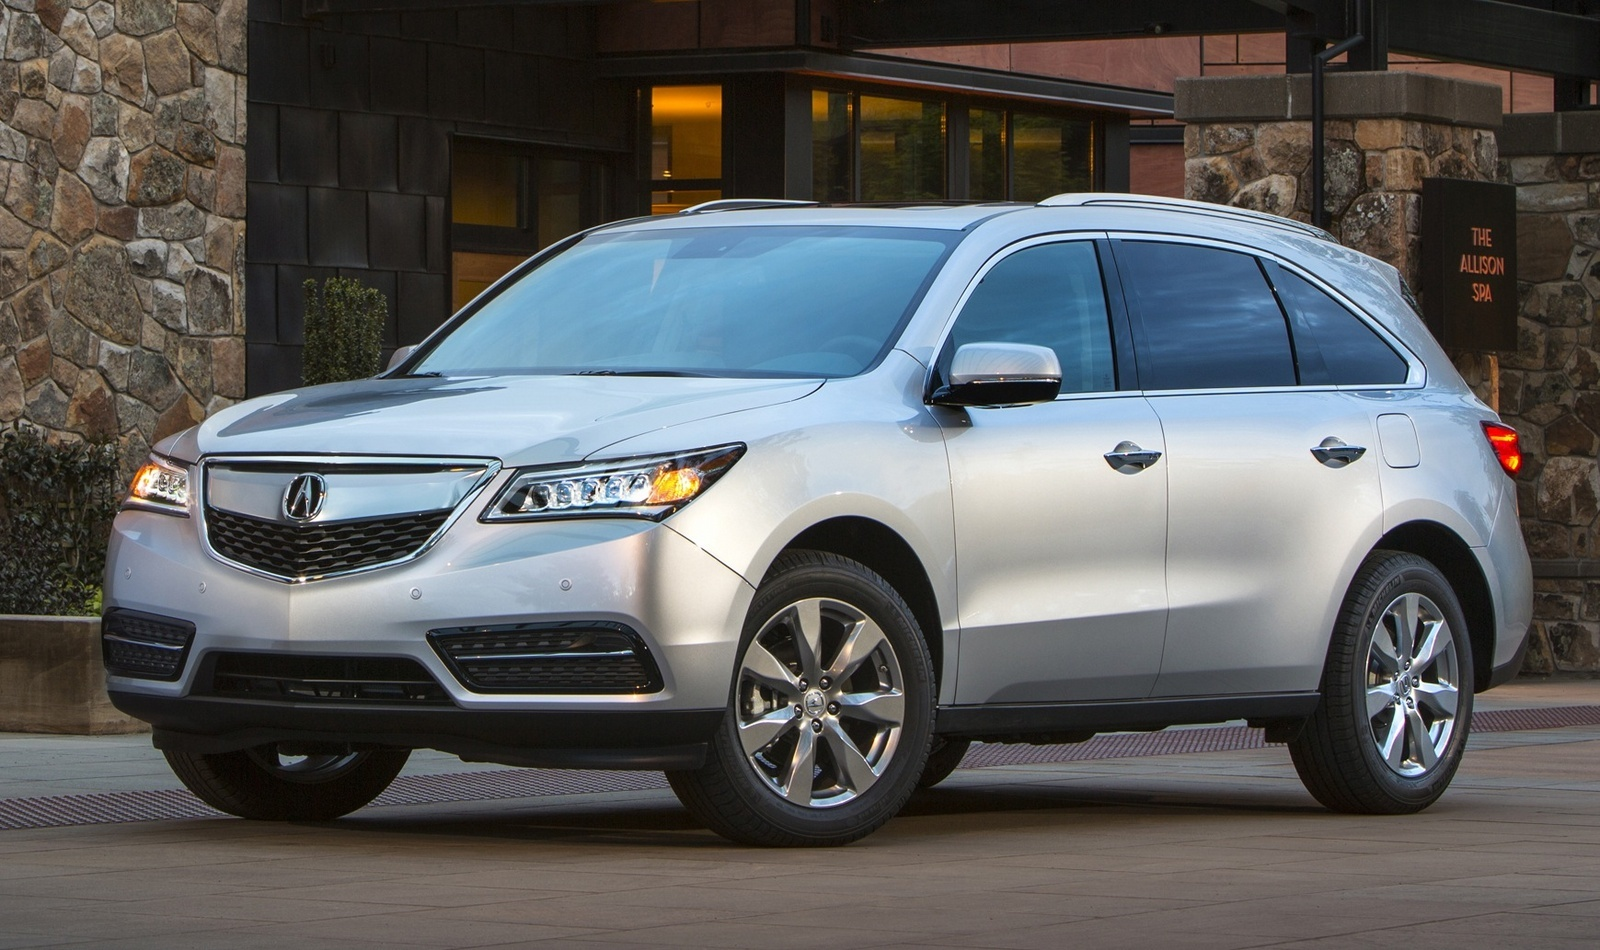 2015 Acura MDX - Review - CarGurus